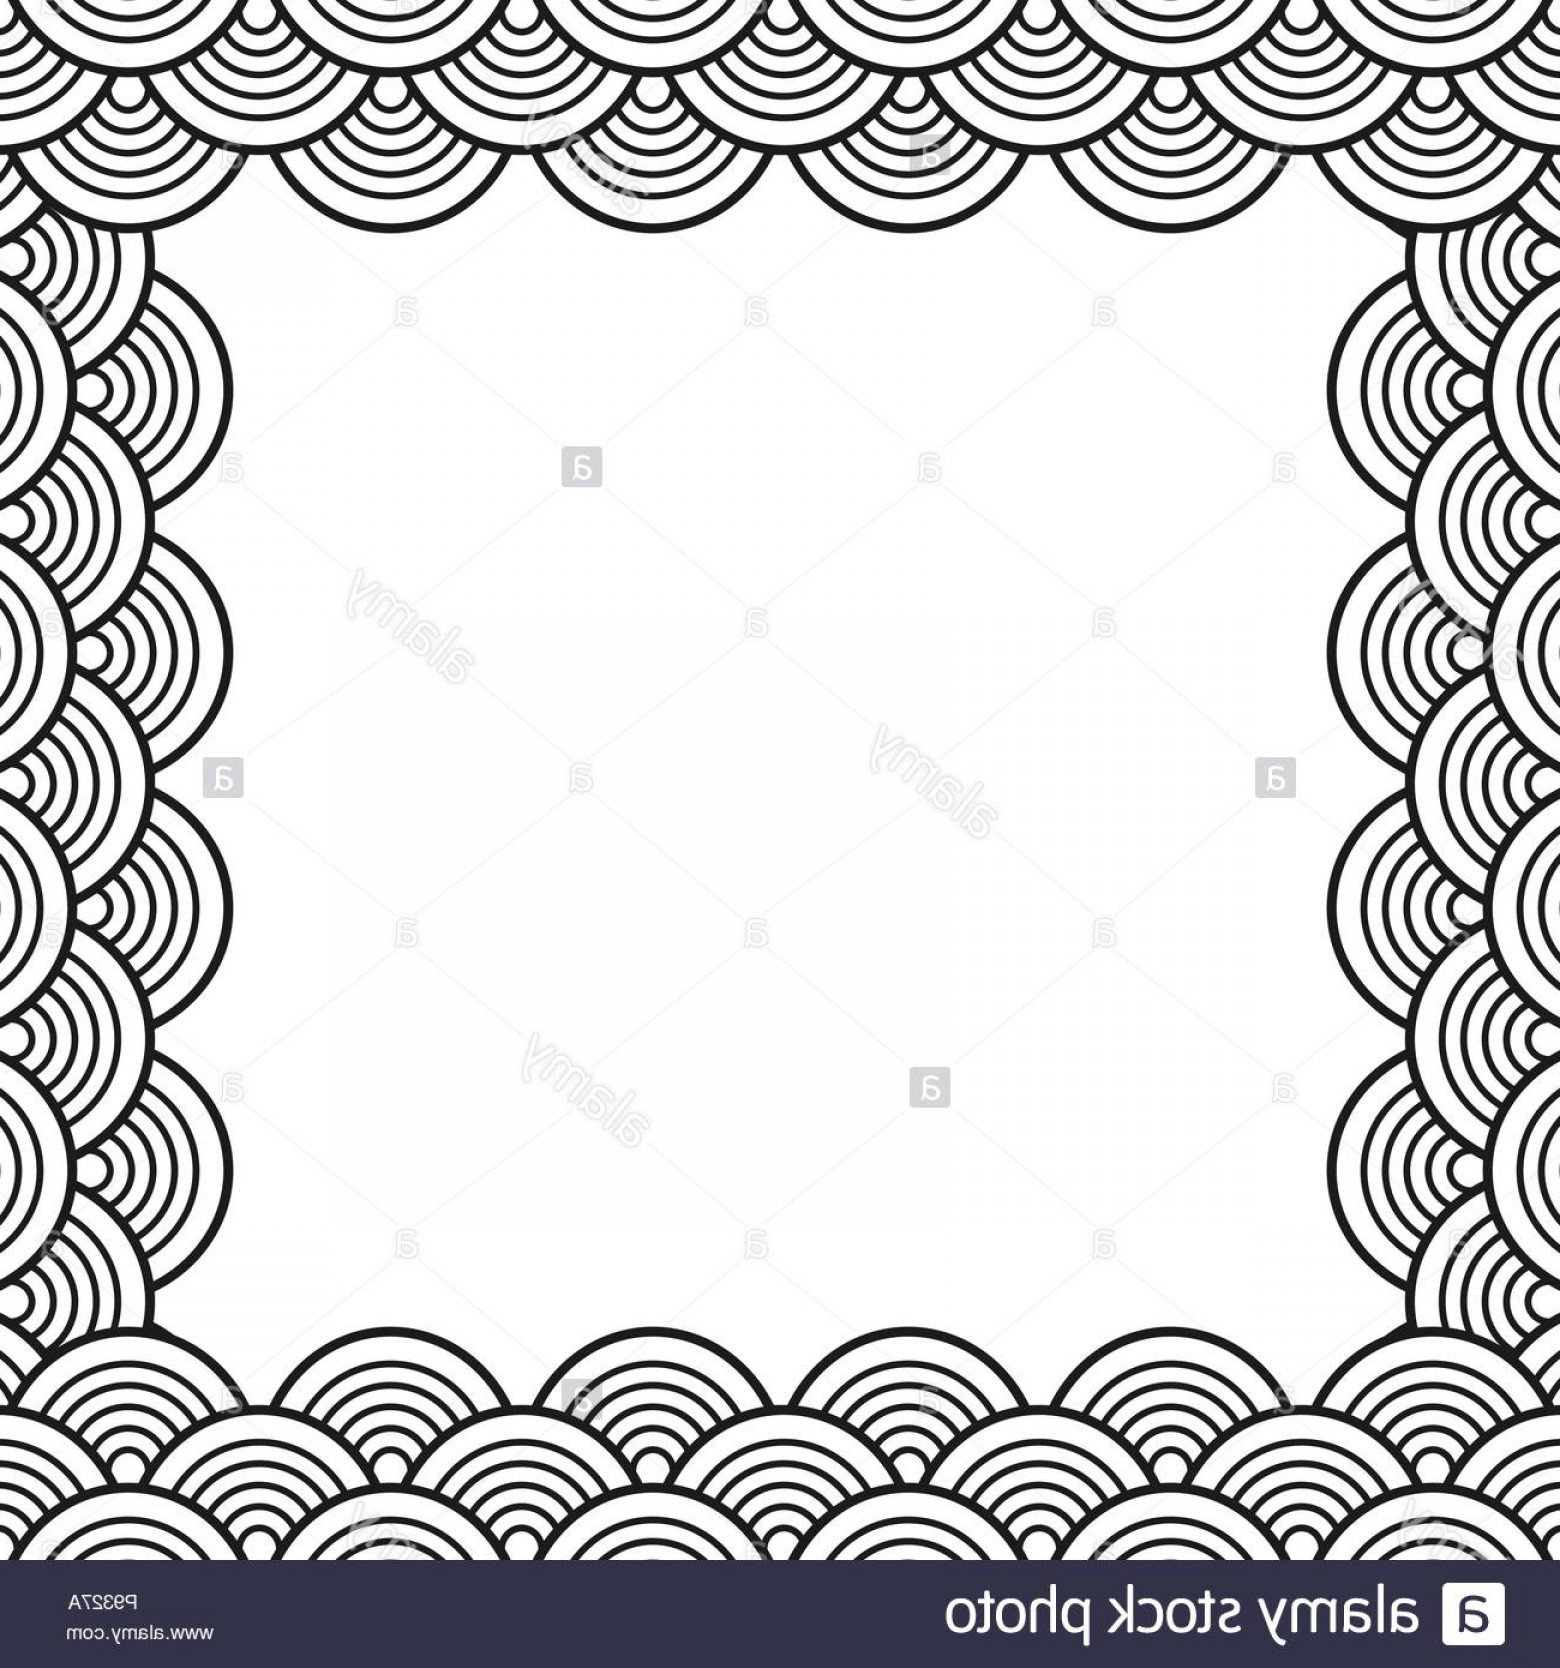 Black Scalloped Border Vector: Black Traditional Wave Japanese Chinese Seigaiha Border Vector Illustration Image